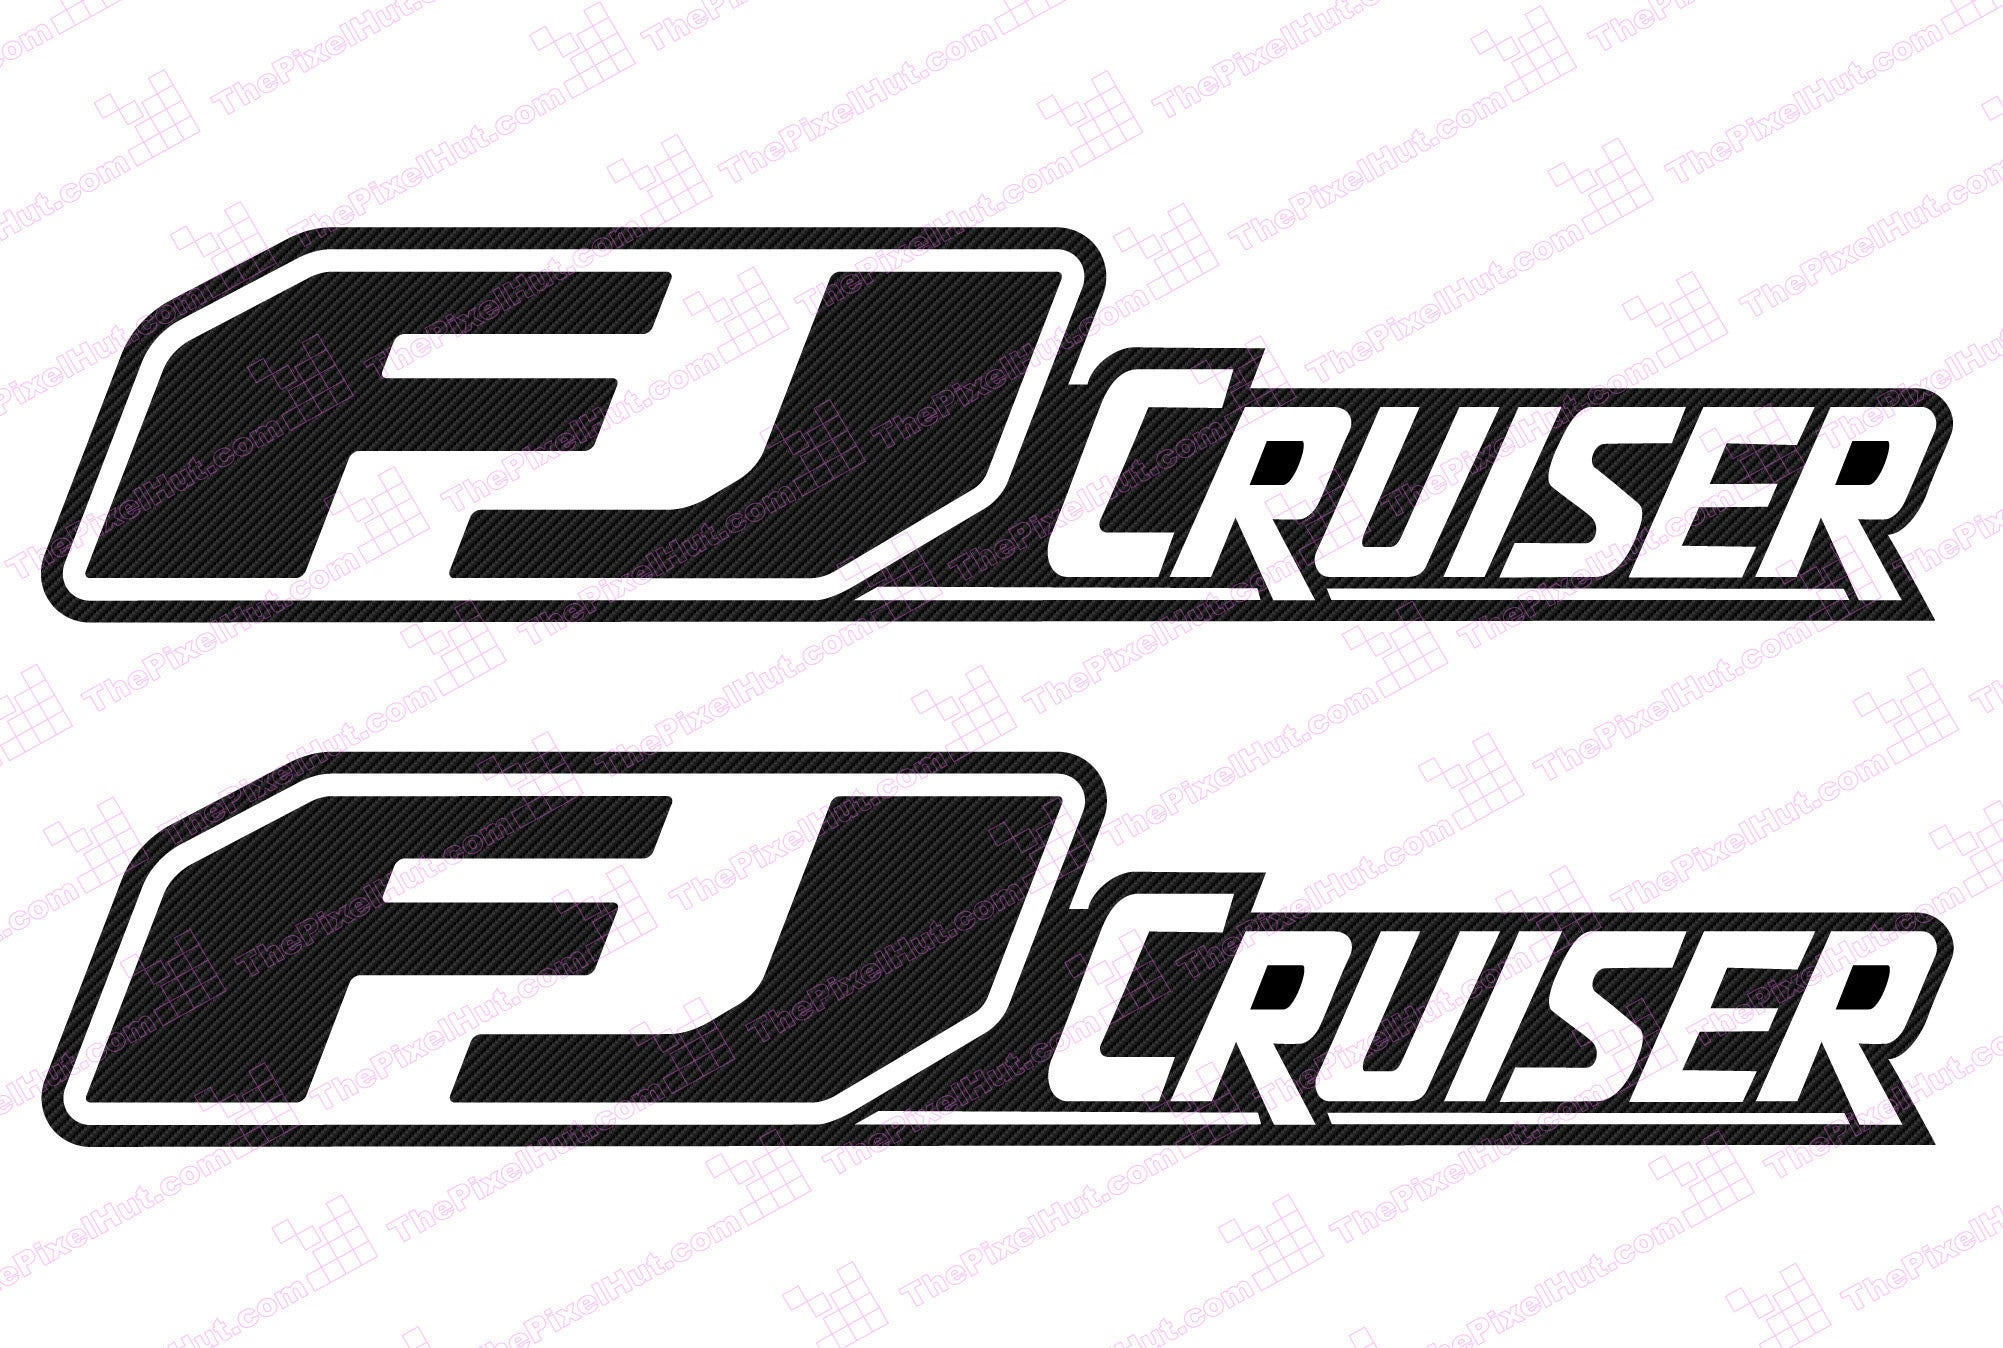 Toyota Fj Cruiser Door Decal Kit together with The Image Receptor likewise Csu polymer lesson01 besides Arovex 77619522 furthermore Jdm Hoonigan Sticker Decal. on carbon fiber application